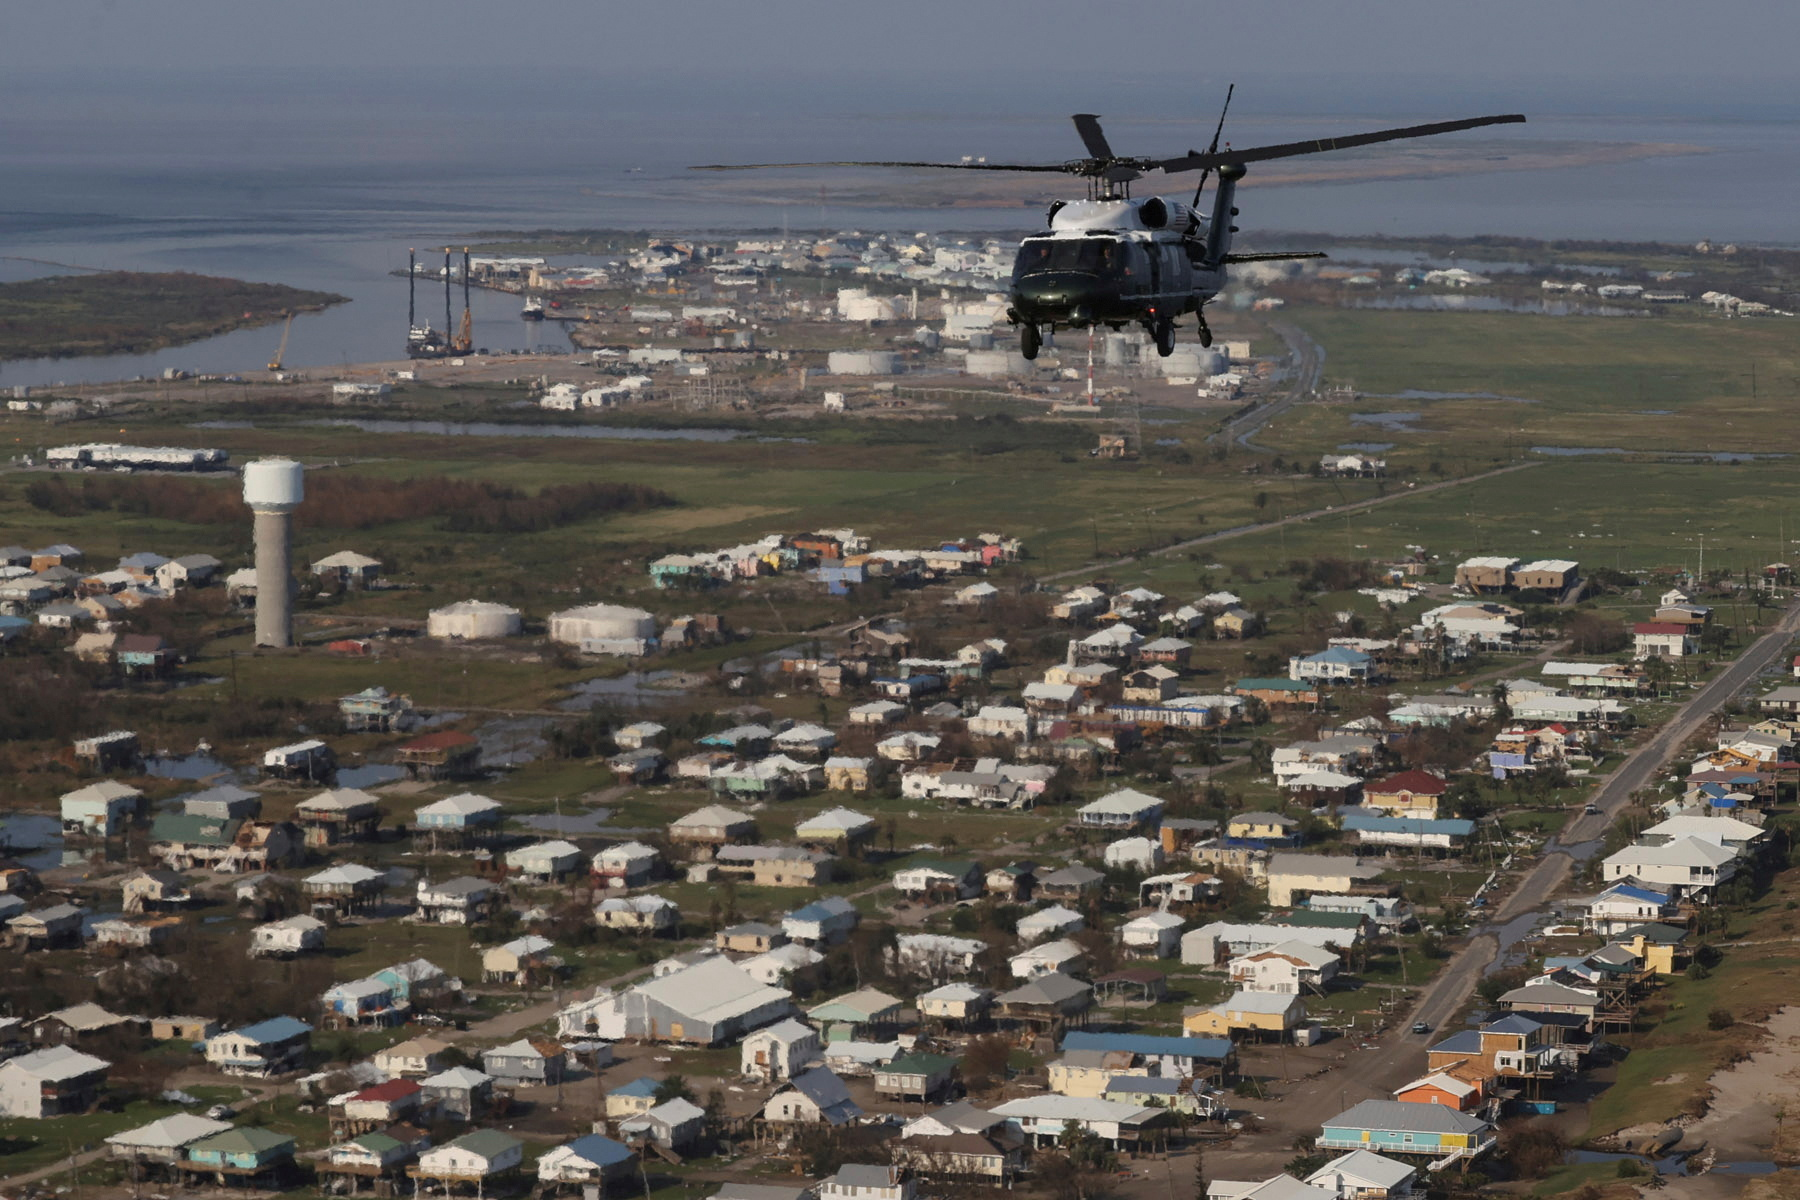 U.S. President Joe Biden, aboard the Marine One helicopter, inspects the damage from Hurricane Ida on an aerial tour of communities in Laffite, Grand Isle, Port Fourchon and Lafourche Parish, Louisiana, U.S. September 3, 2021. REUTERS/Jonathan Ernst/Pool/File Photo